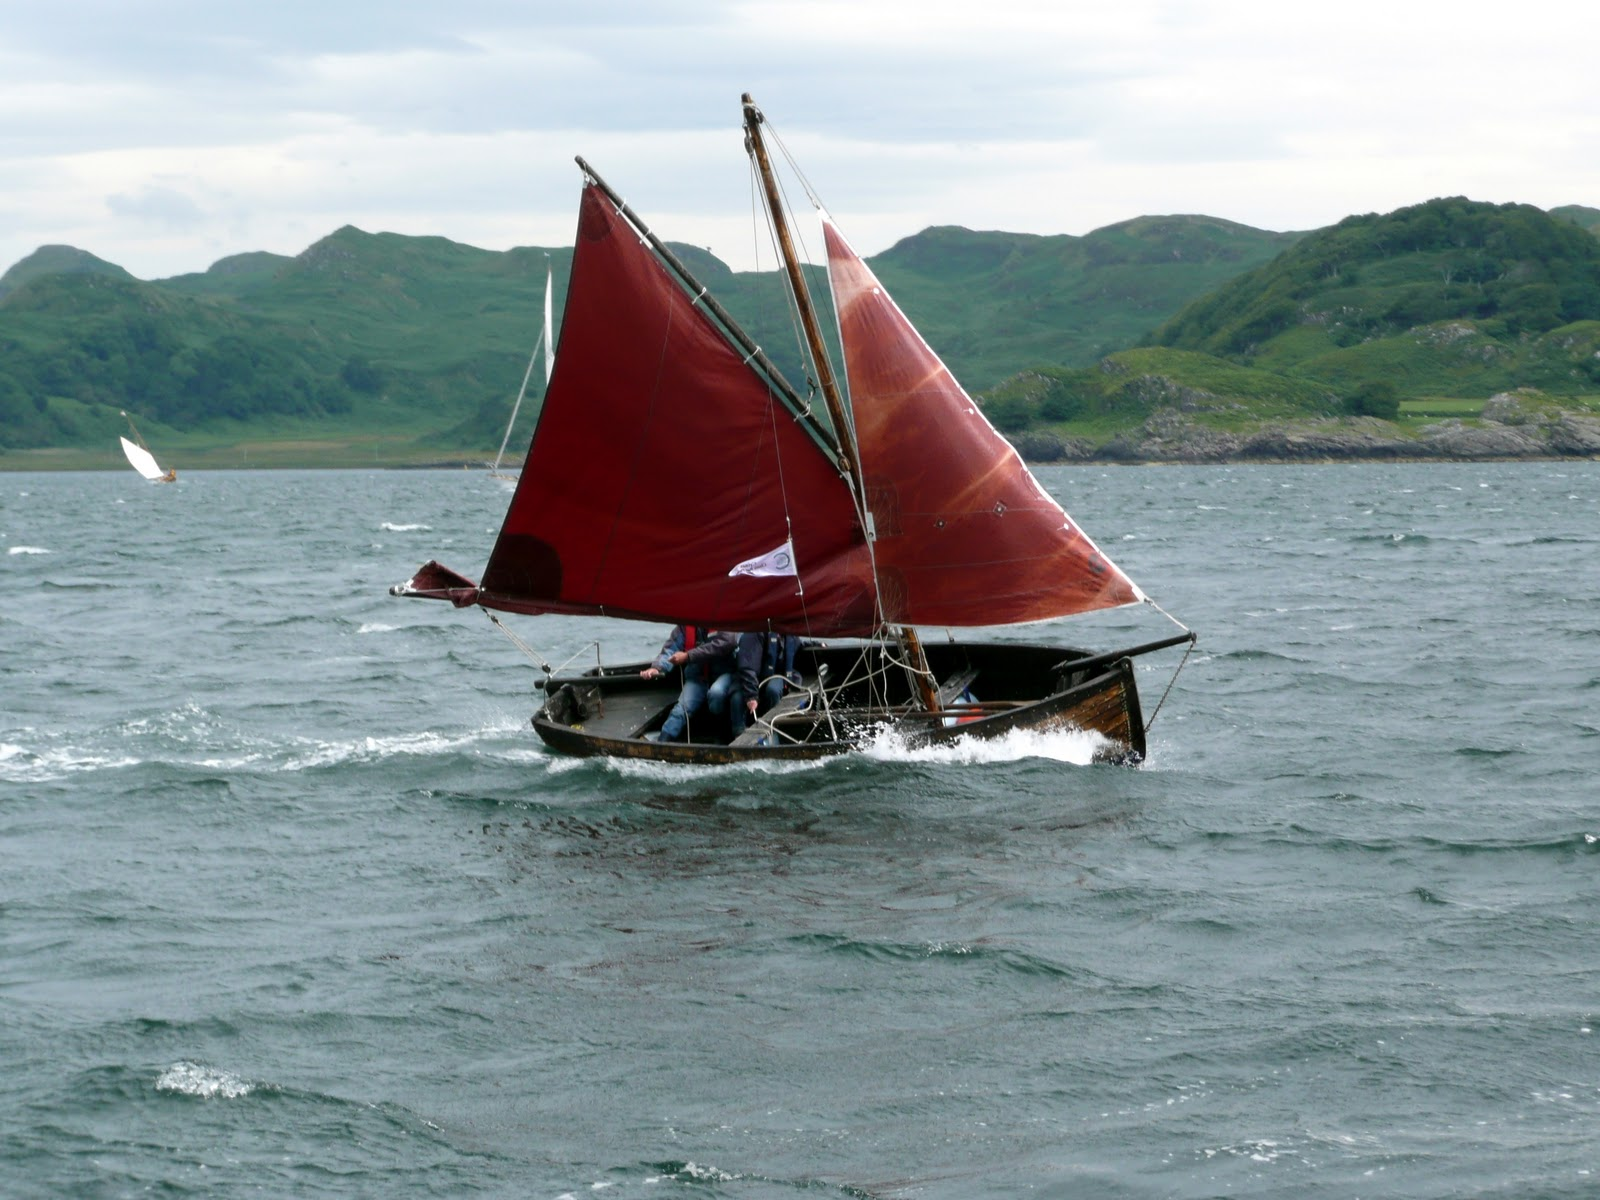 scottishboating the evolution of small boat types